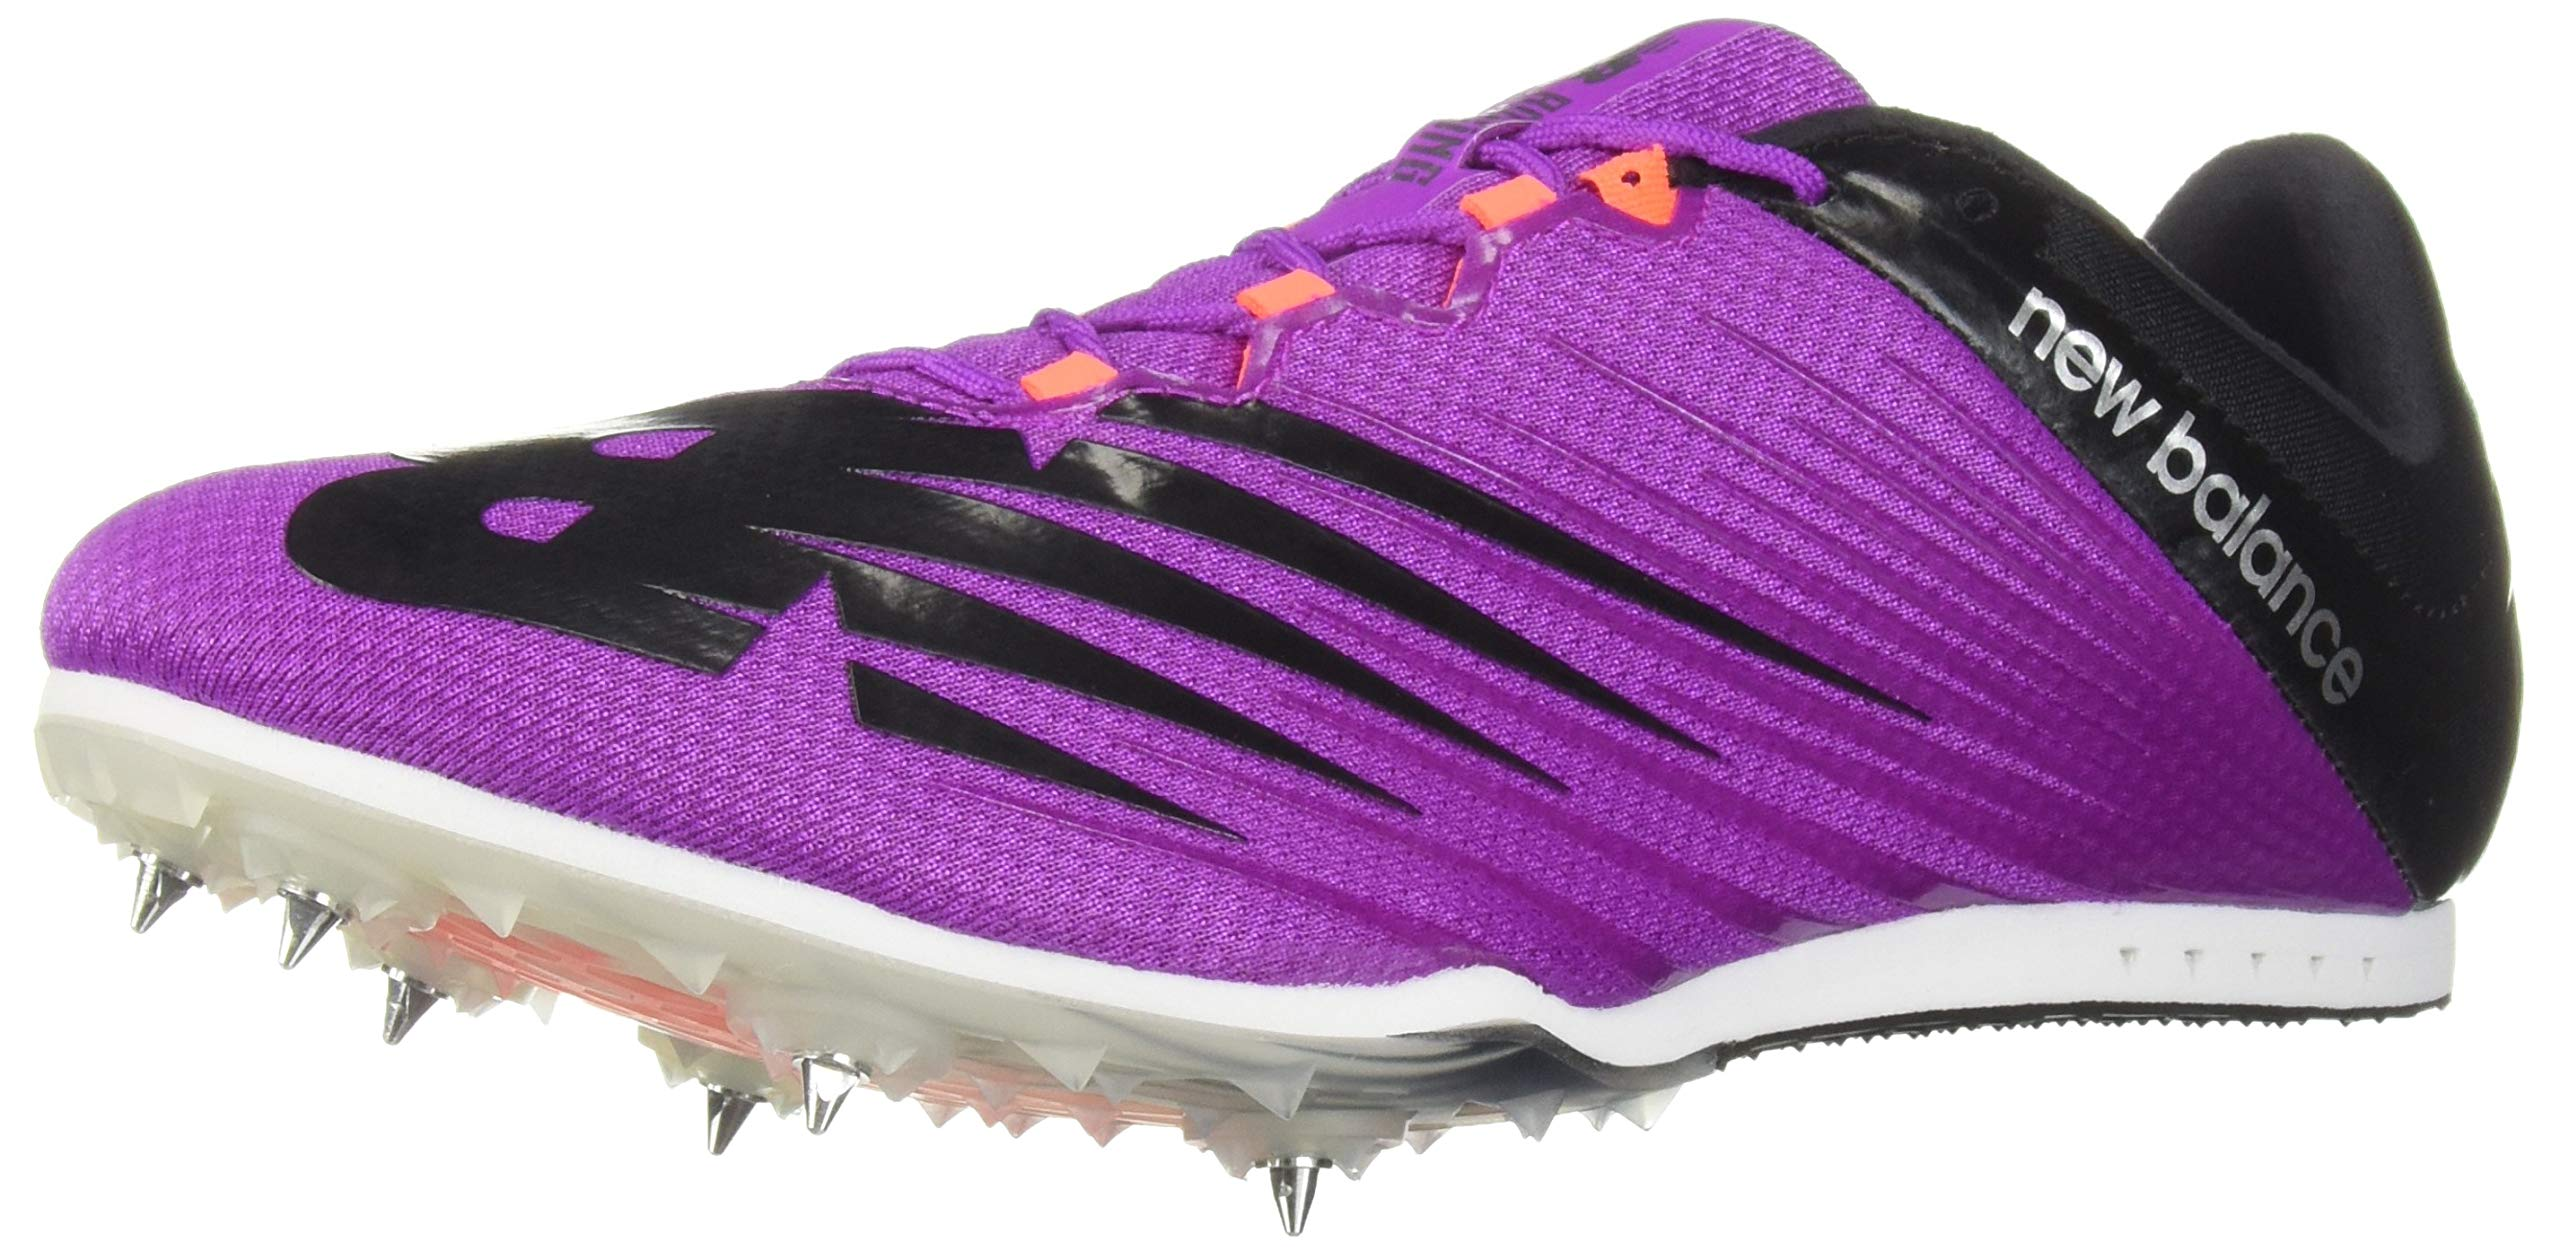 New Balance Women's 500v6 Track Shoe Voltage Violet/Black 9 B US by New Balance